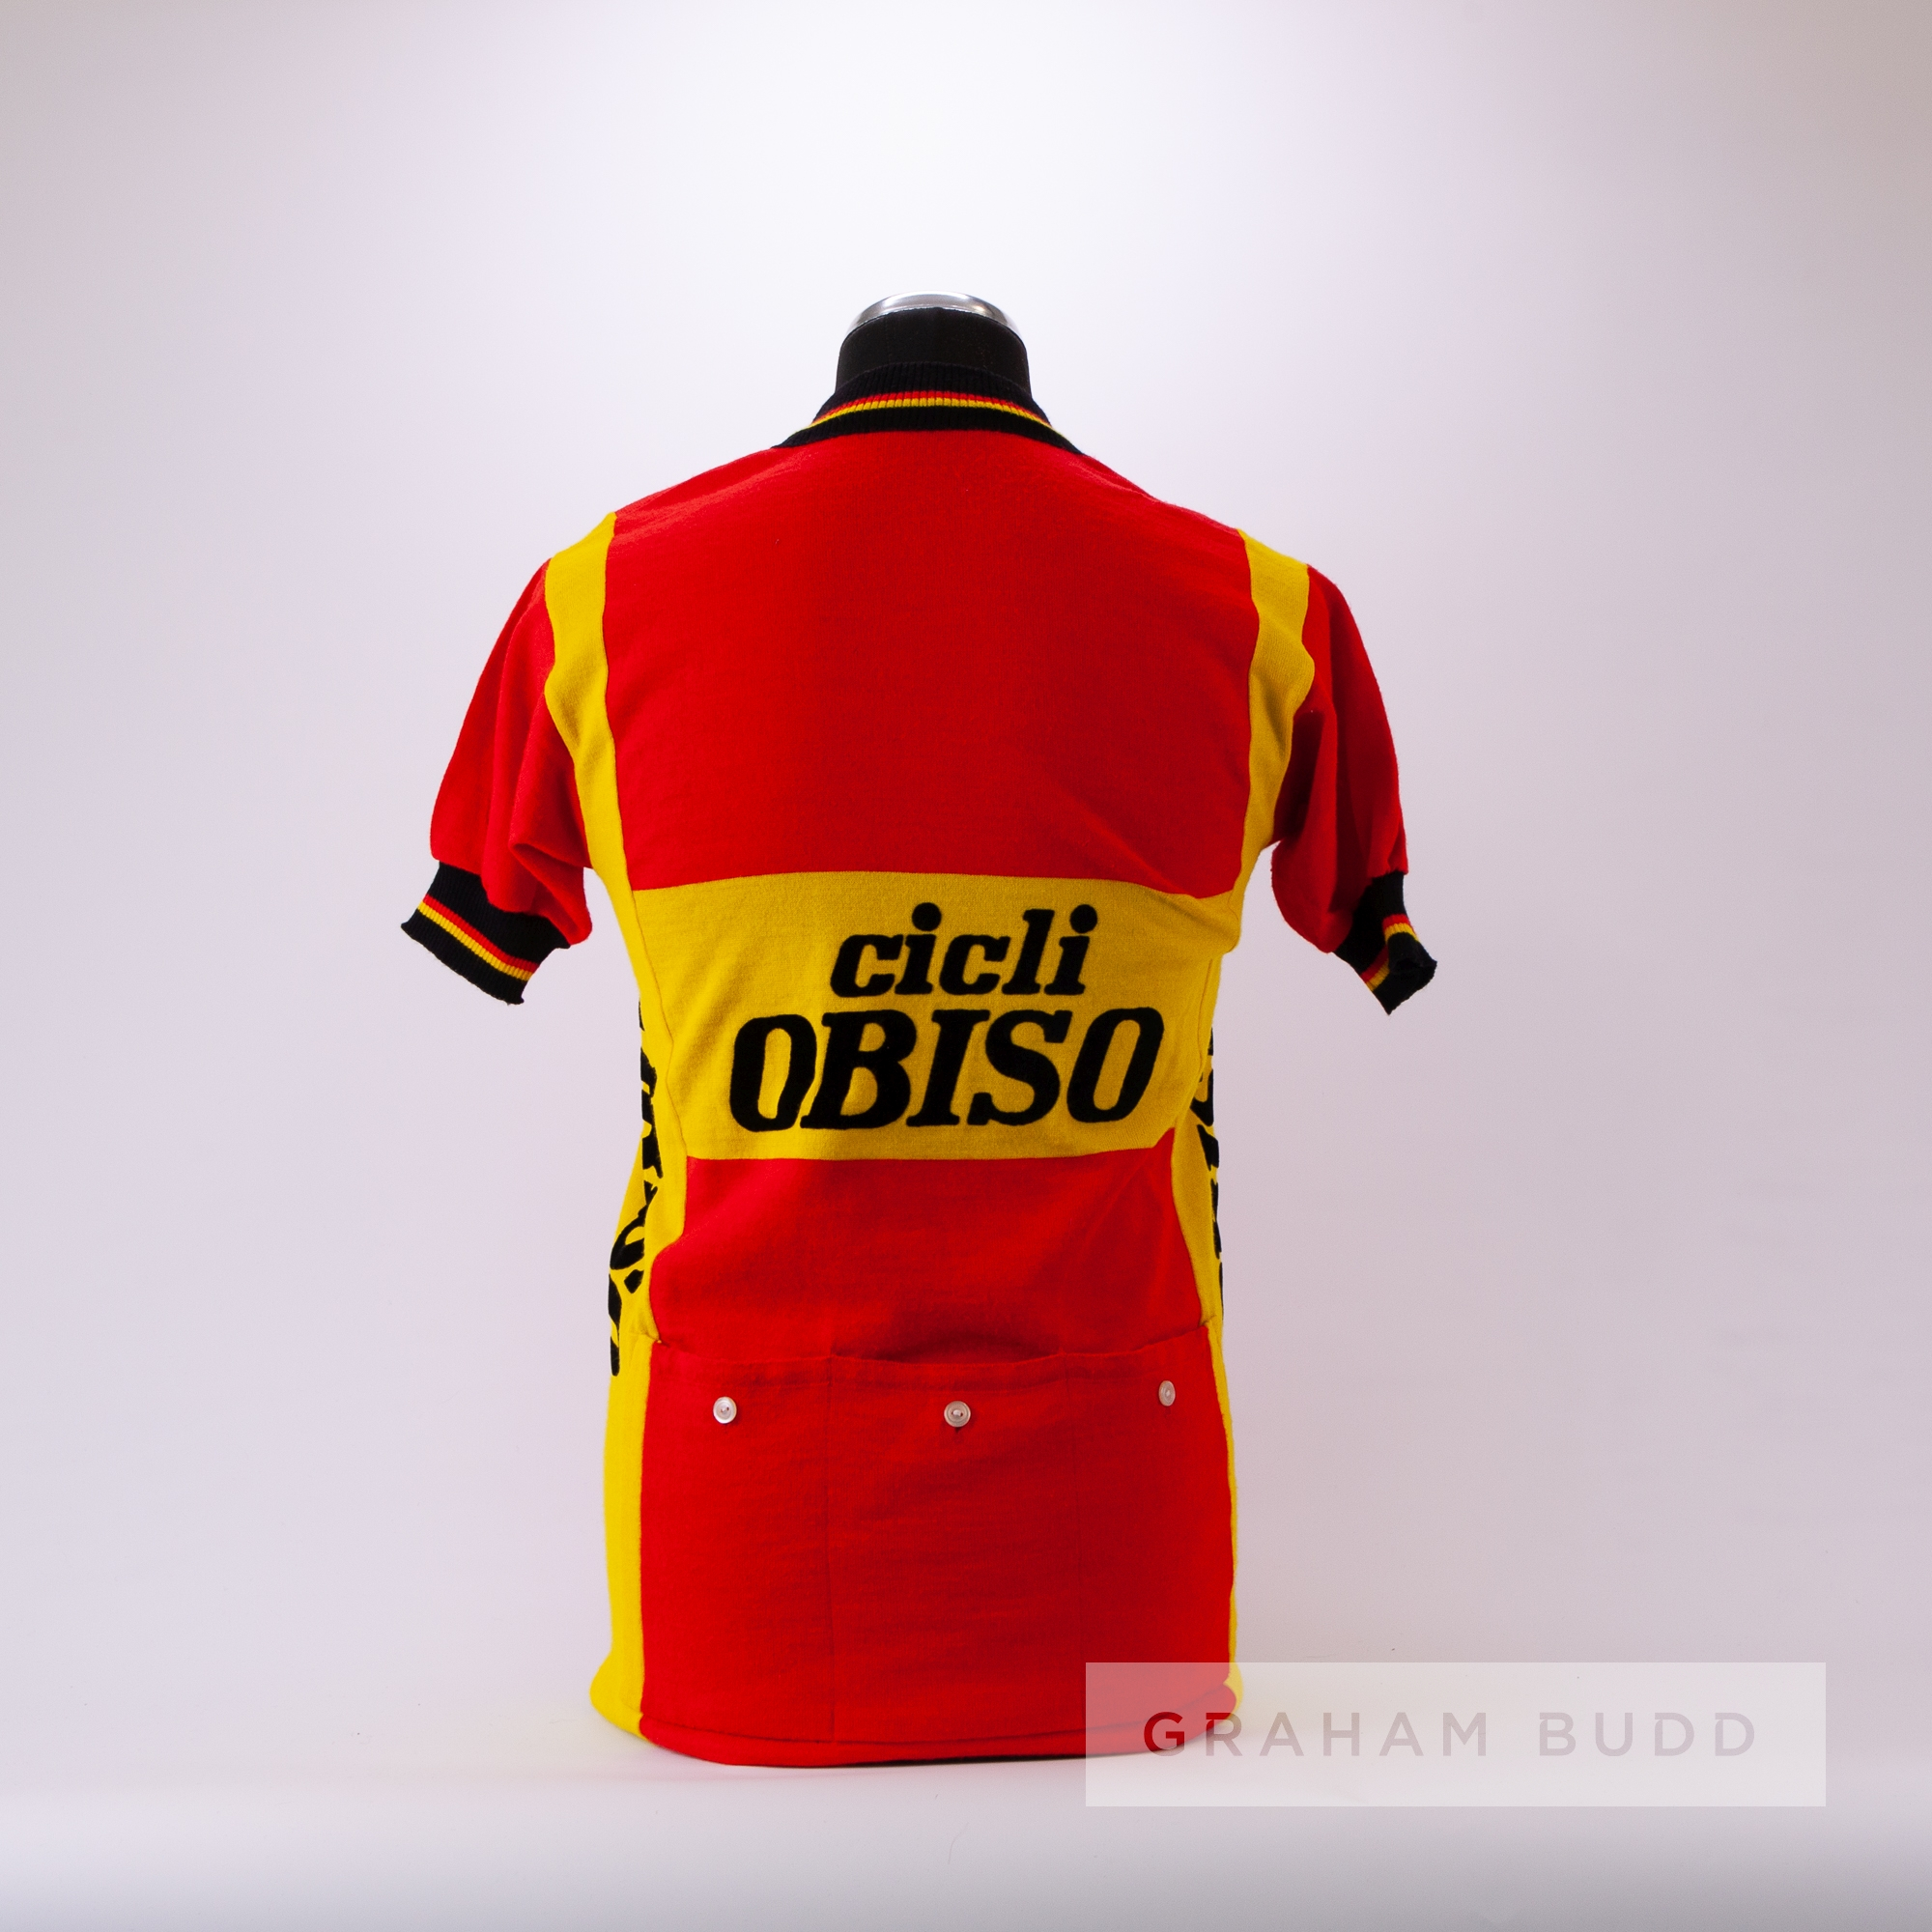 1973 red, yellow and black vintage Moa Sport Cicli Campagnolo Cycling jersey, scarce, wool and - Image 4 of 4